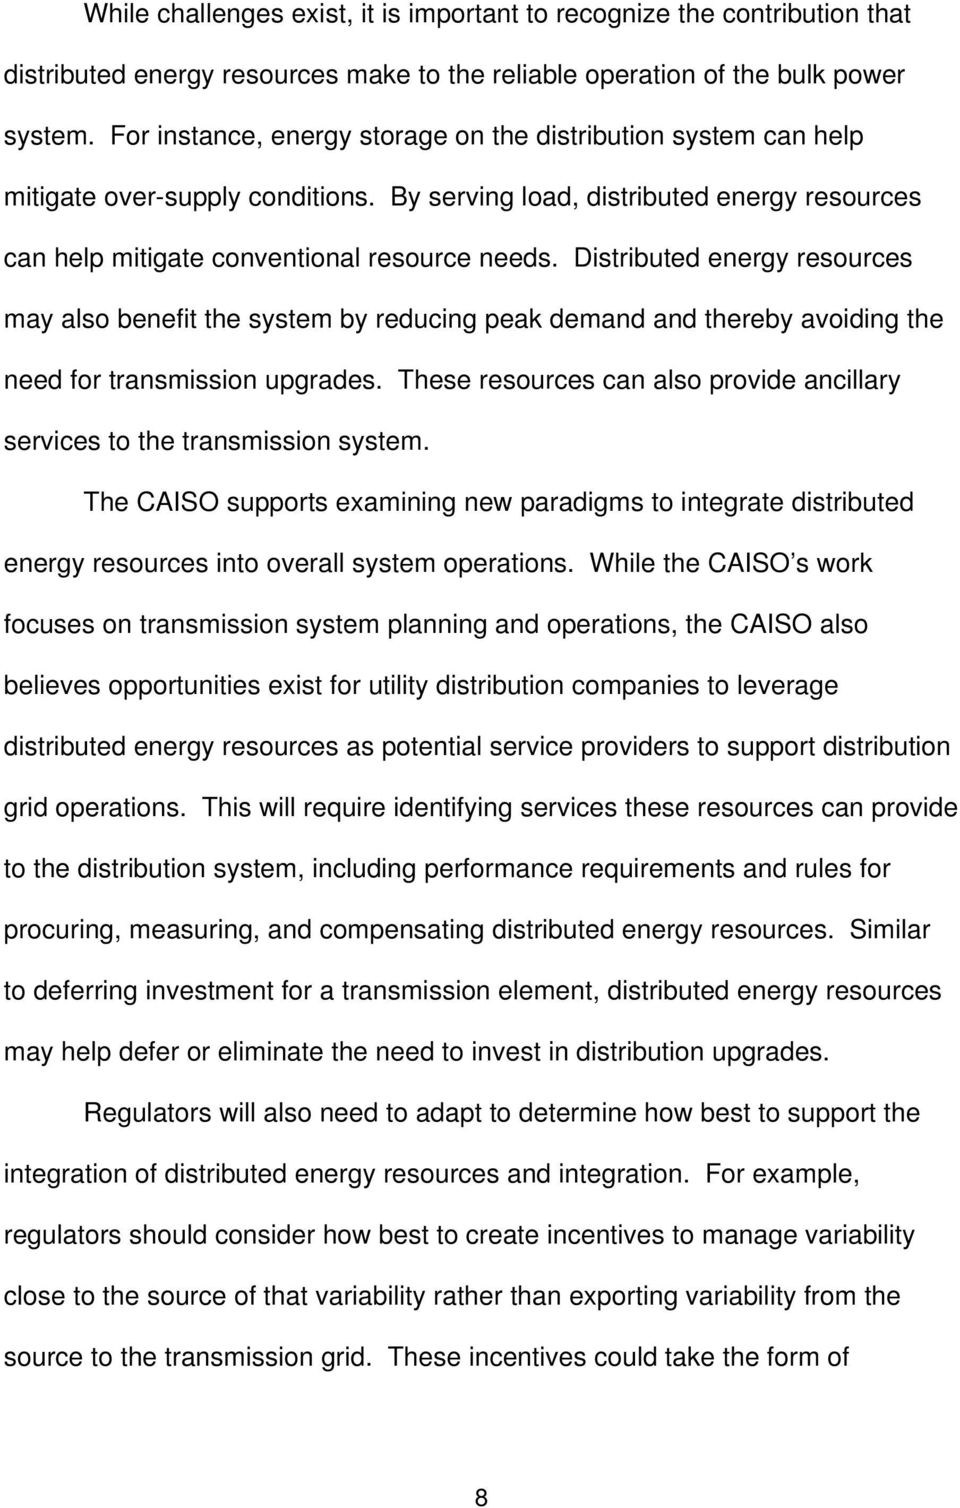 Distributed energy resources may also benefit the system by reducing peak demand and thereby avoiding the need for transmission upgrades.